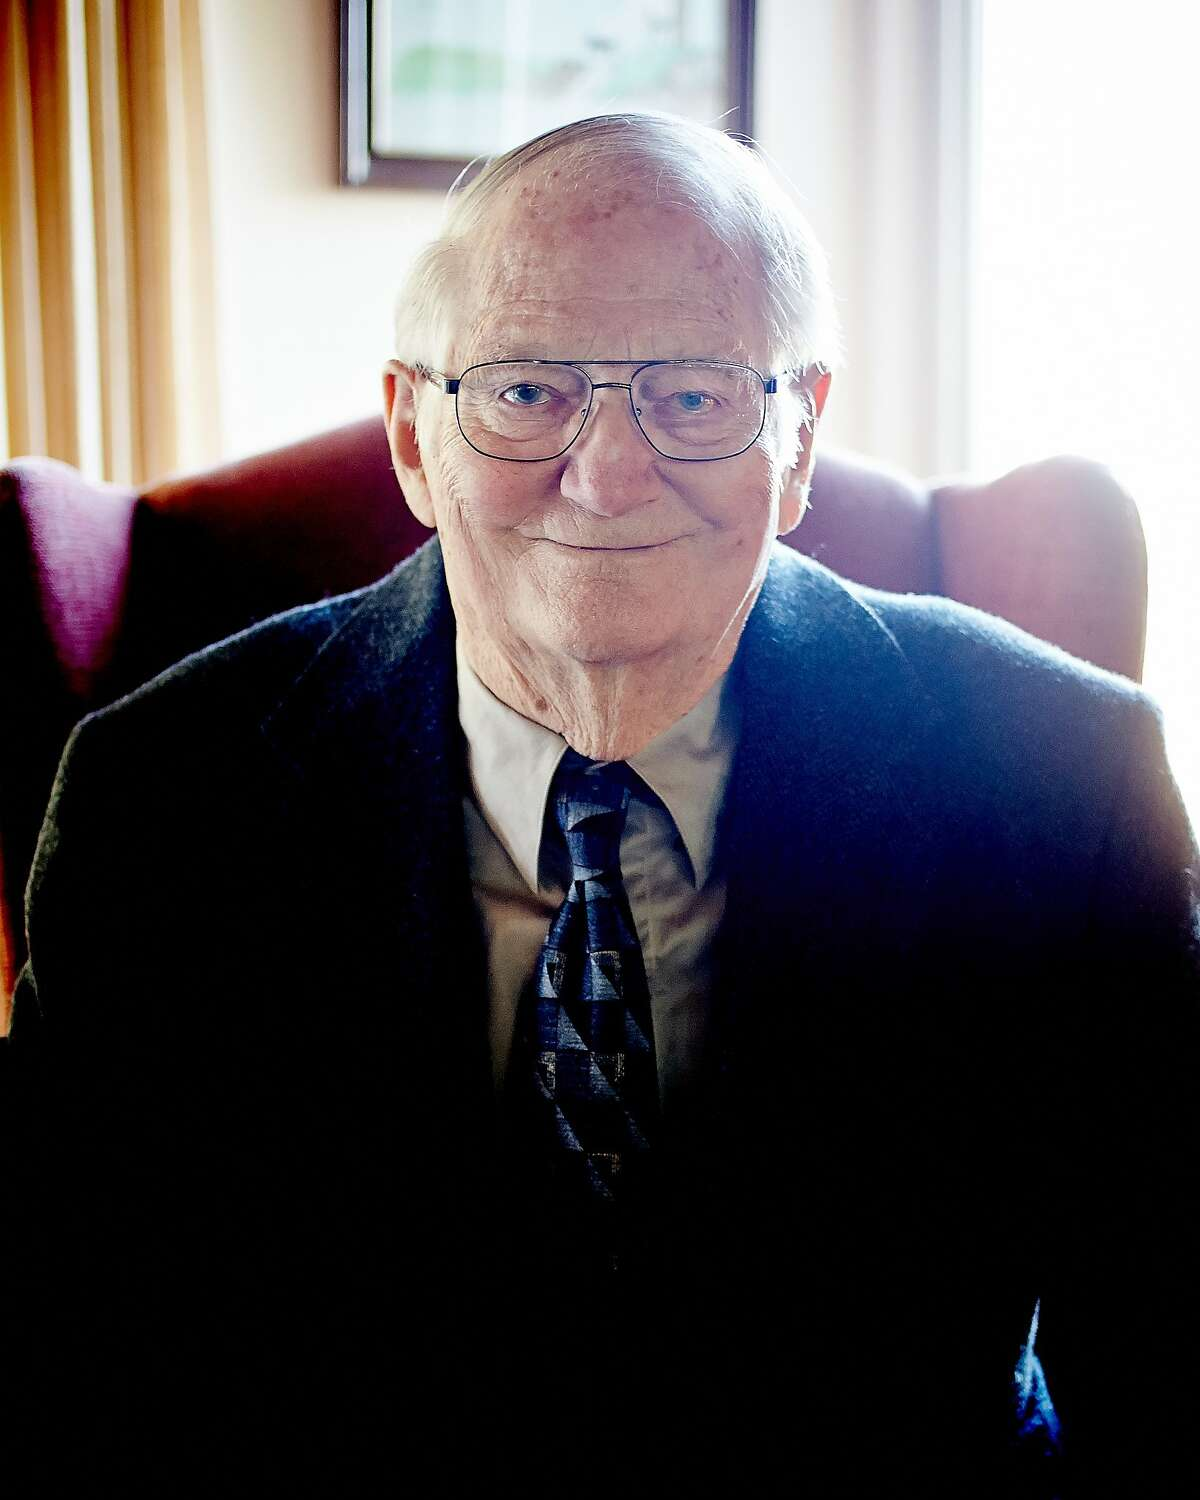 El Cerrito biochemist Frank F. Davis' work resulted in a drug delivery system commonly used in chemotherapy and, more recently, in the Pfizer and Moderna COVID-19 vaccines.